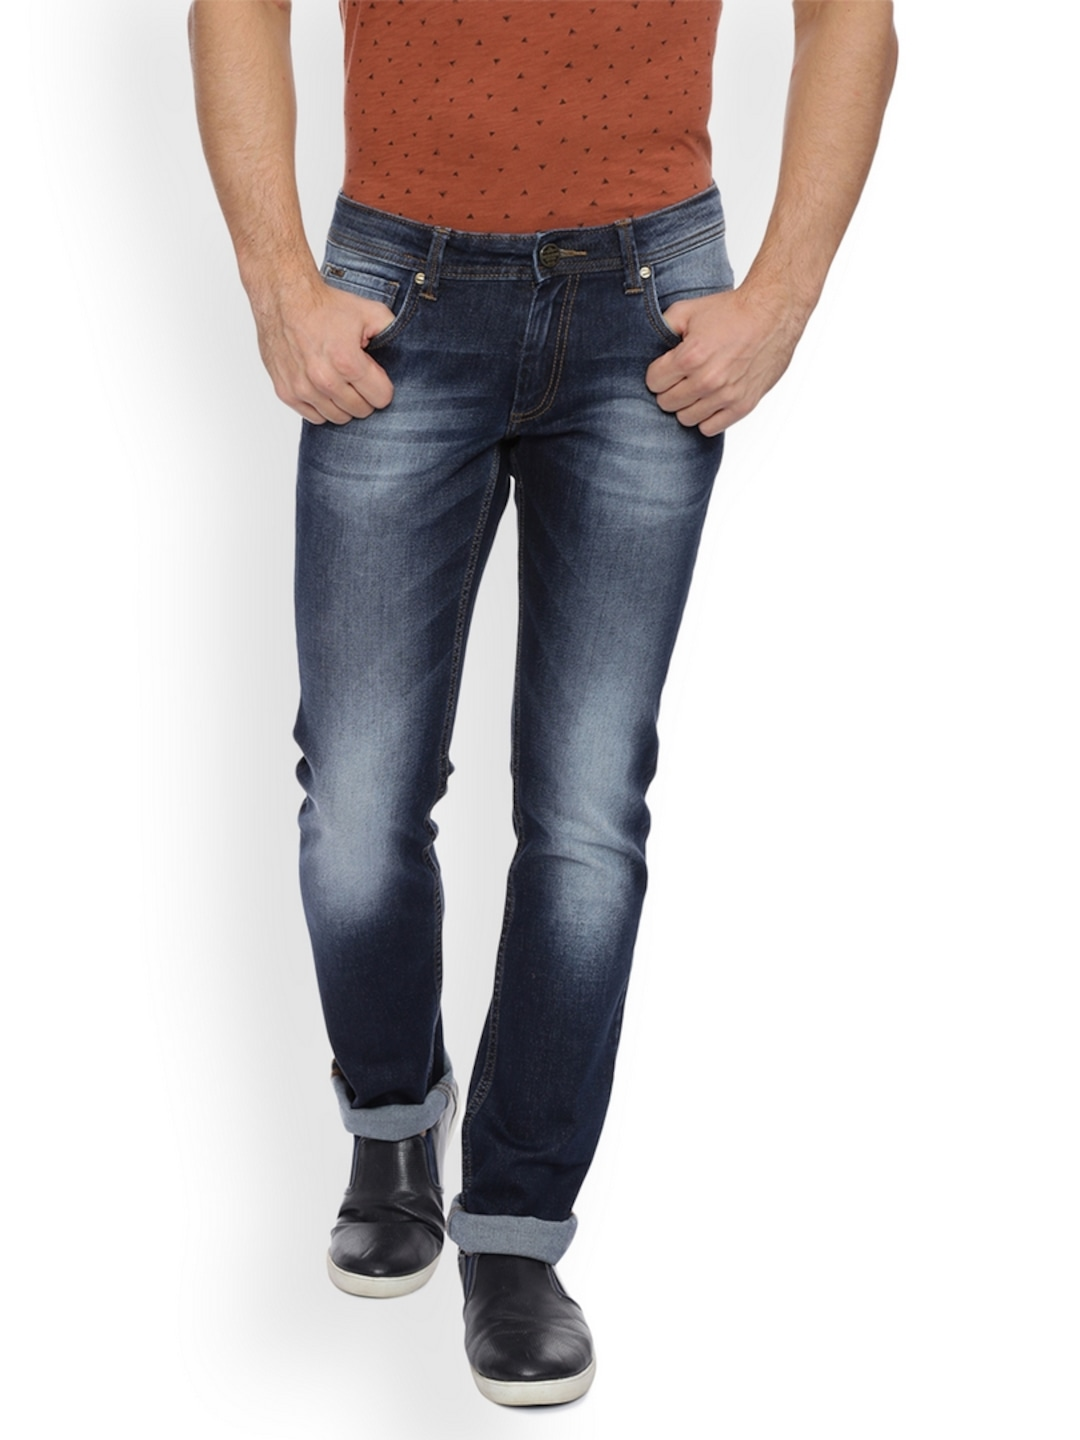 Basic Jeans For Men